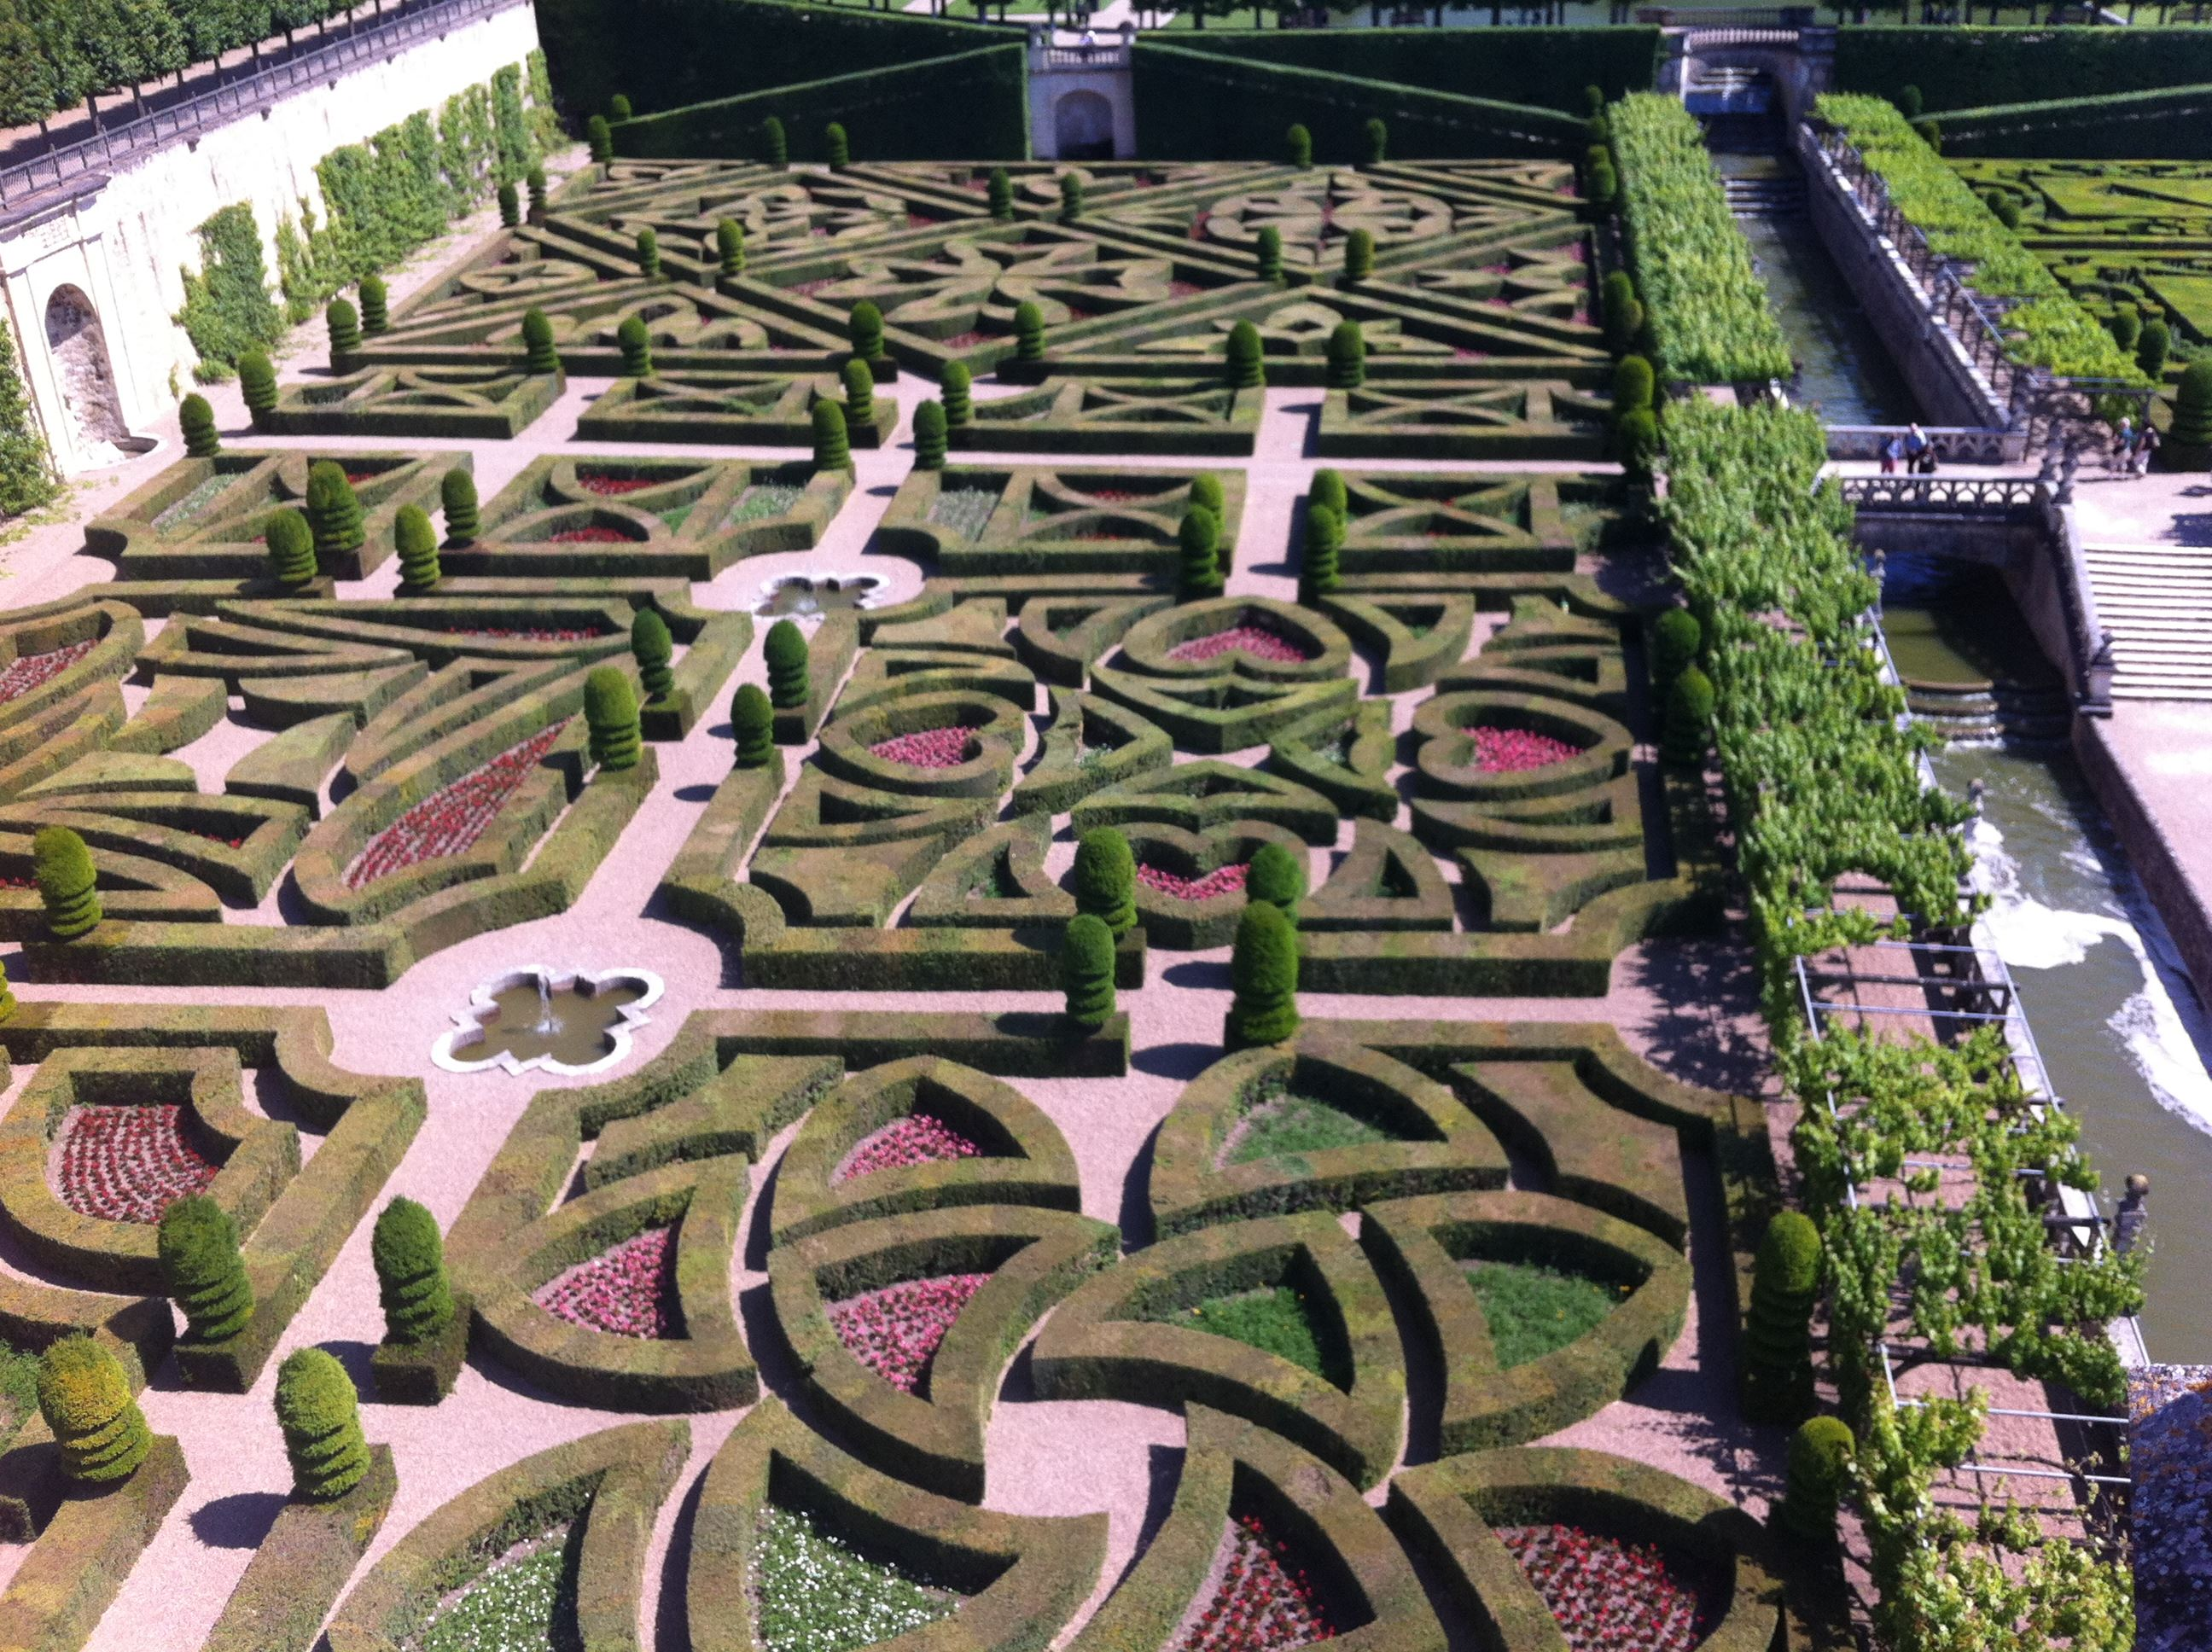 AFTERNOON EXCURSION TO AZAY-LE-RIDEAU/VILLANDRY WITH OLALOIRE ALL INCLUDED